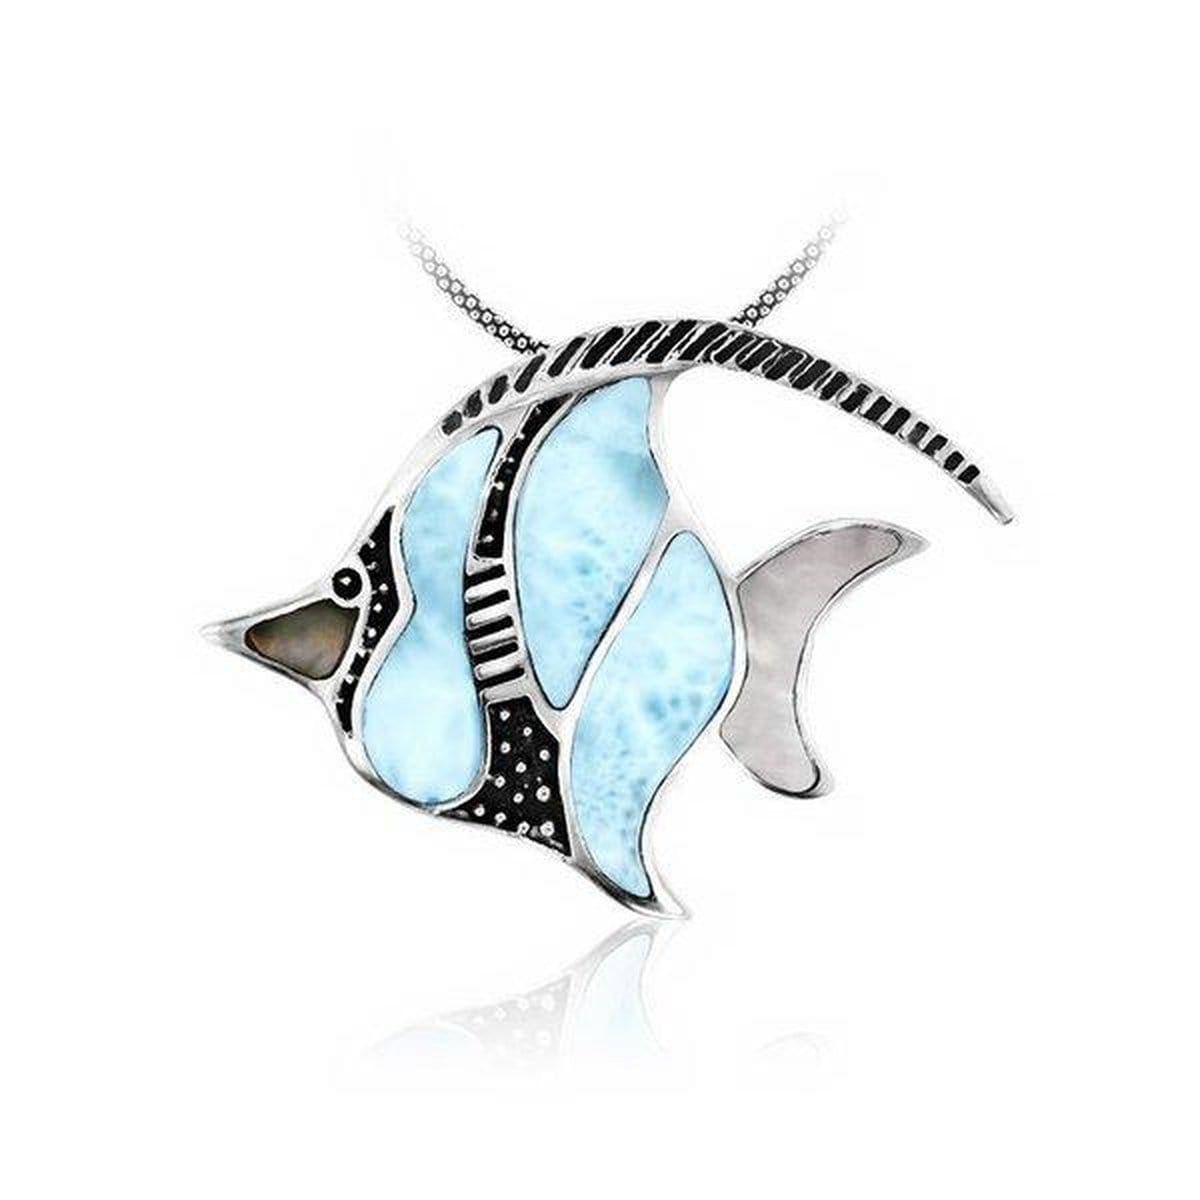 Angelfish Necklace - Nange01-00-Marahlago Larimar-Renee Taylor Gallery